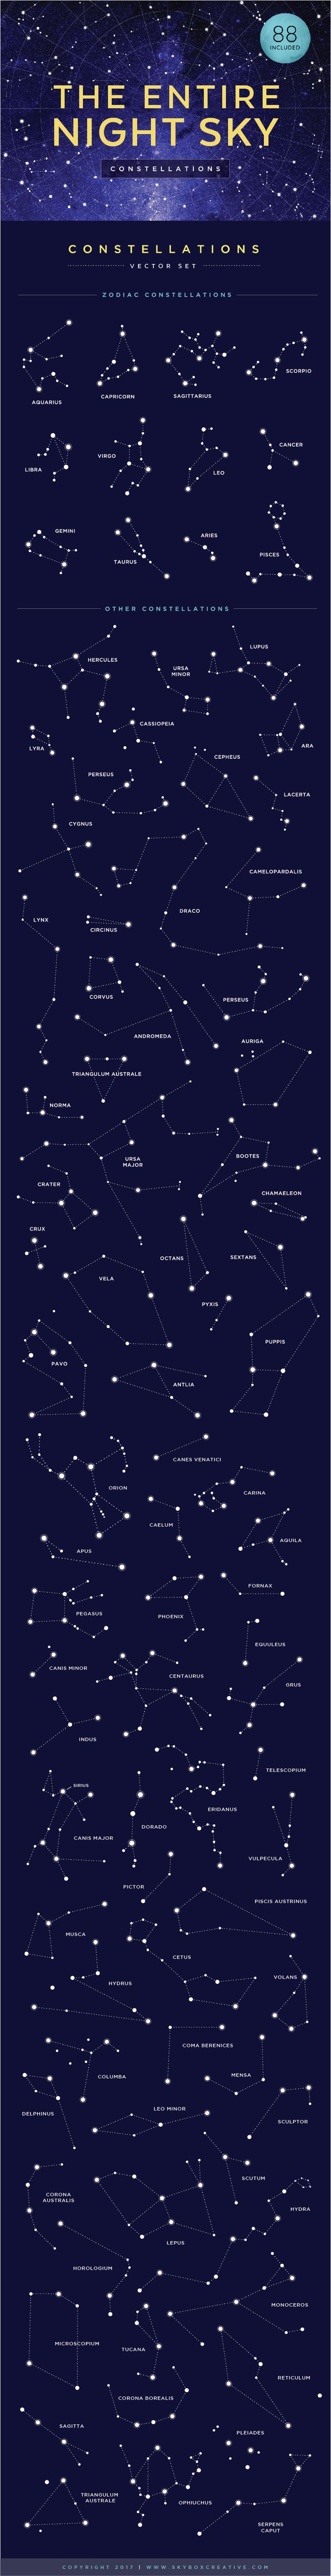 Our Constellations Vector Bundle includes both Vol. 1 & Vol. 2, containing all the 88+ constellations, sky chart graphic, poster design and 2 BONUS star-filled backgrounds!  Normally $24 – Now $16! Save 33%! @skyboxcreative @creativemarket